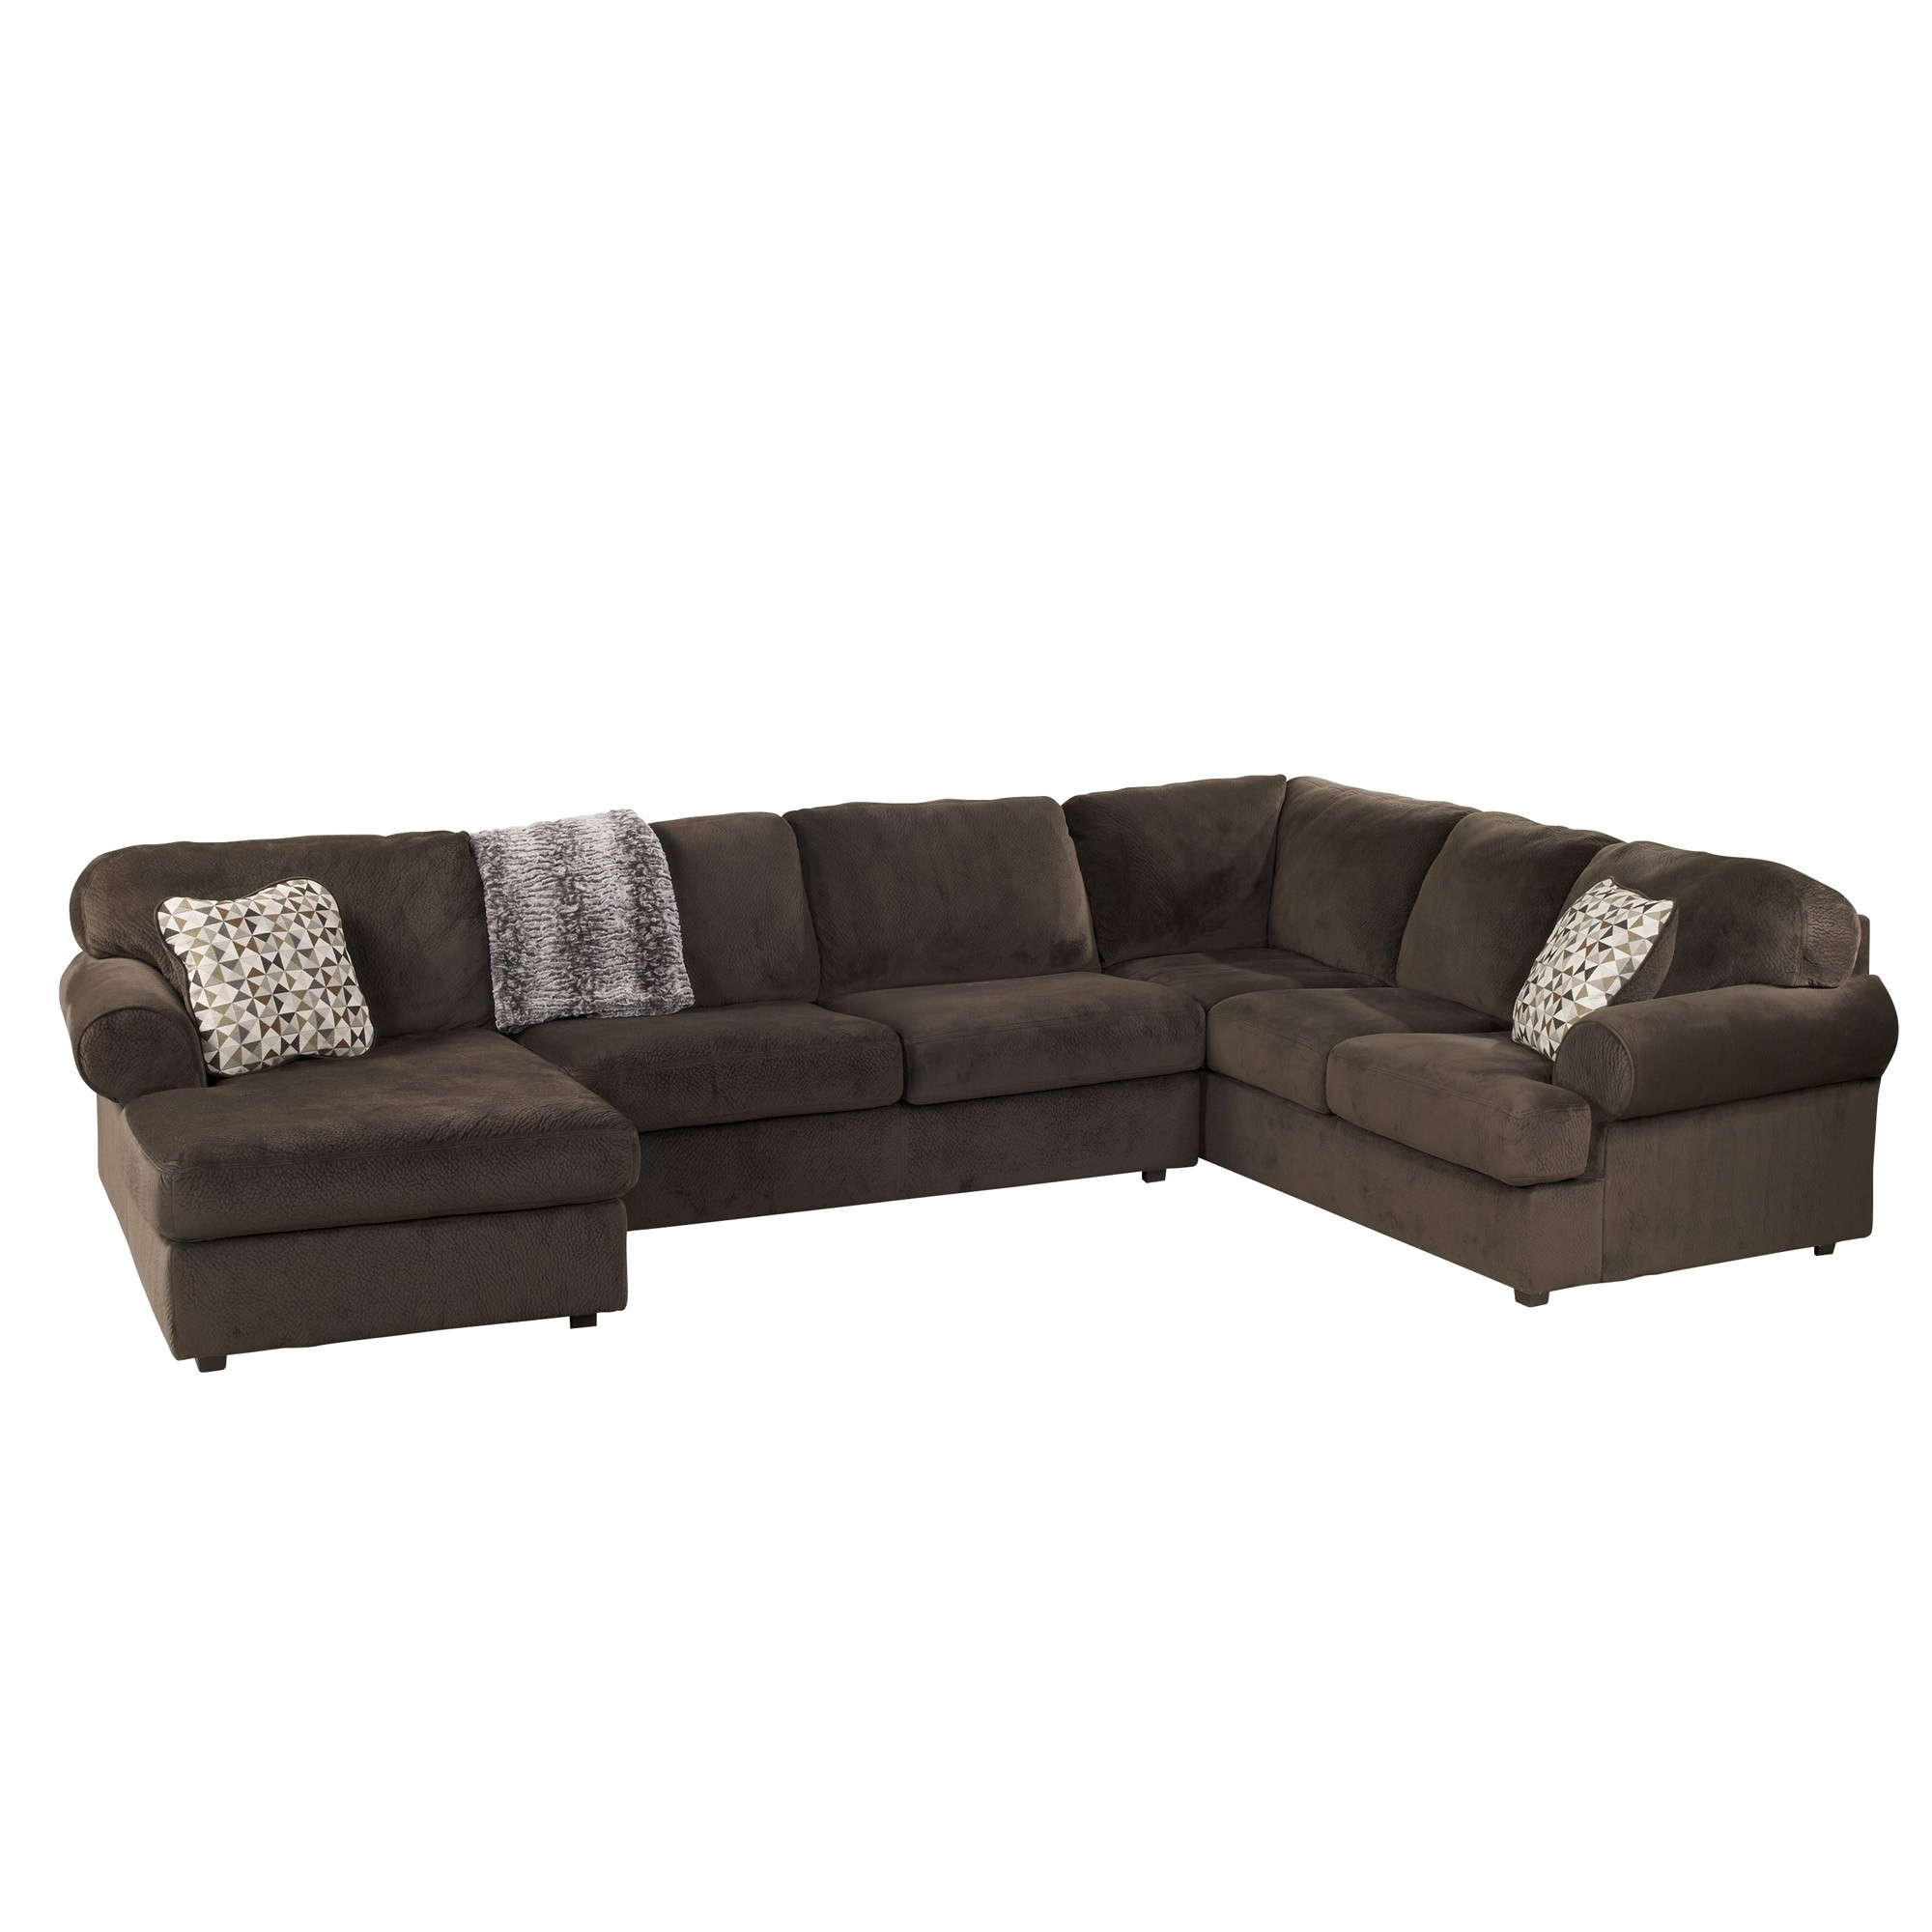 Sectionals | Tepperman's Regarding Teppermans Sectional Sofas (View 2 of 10)